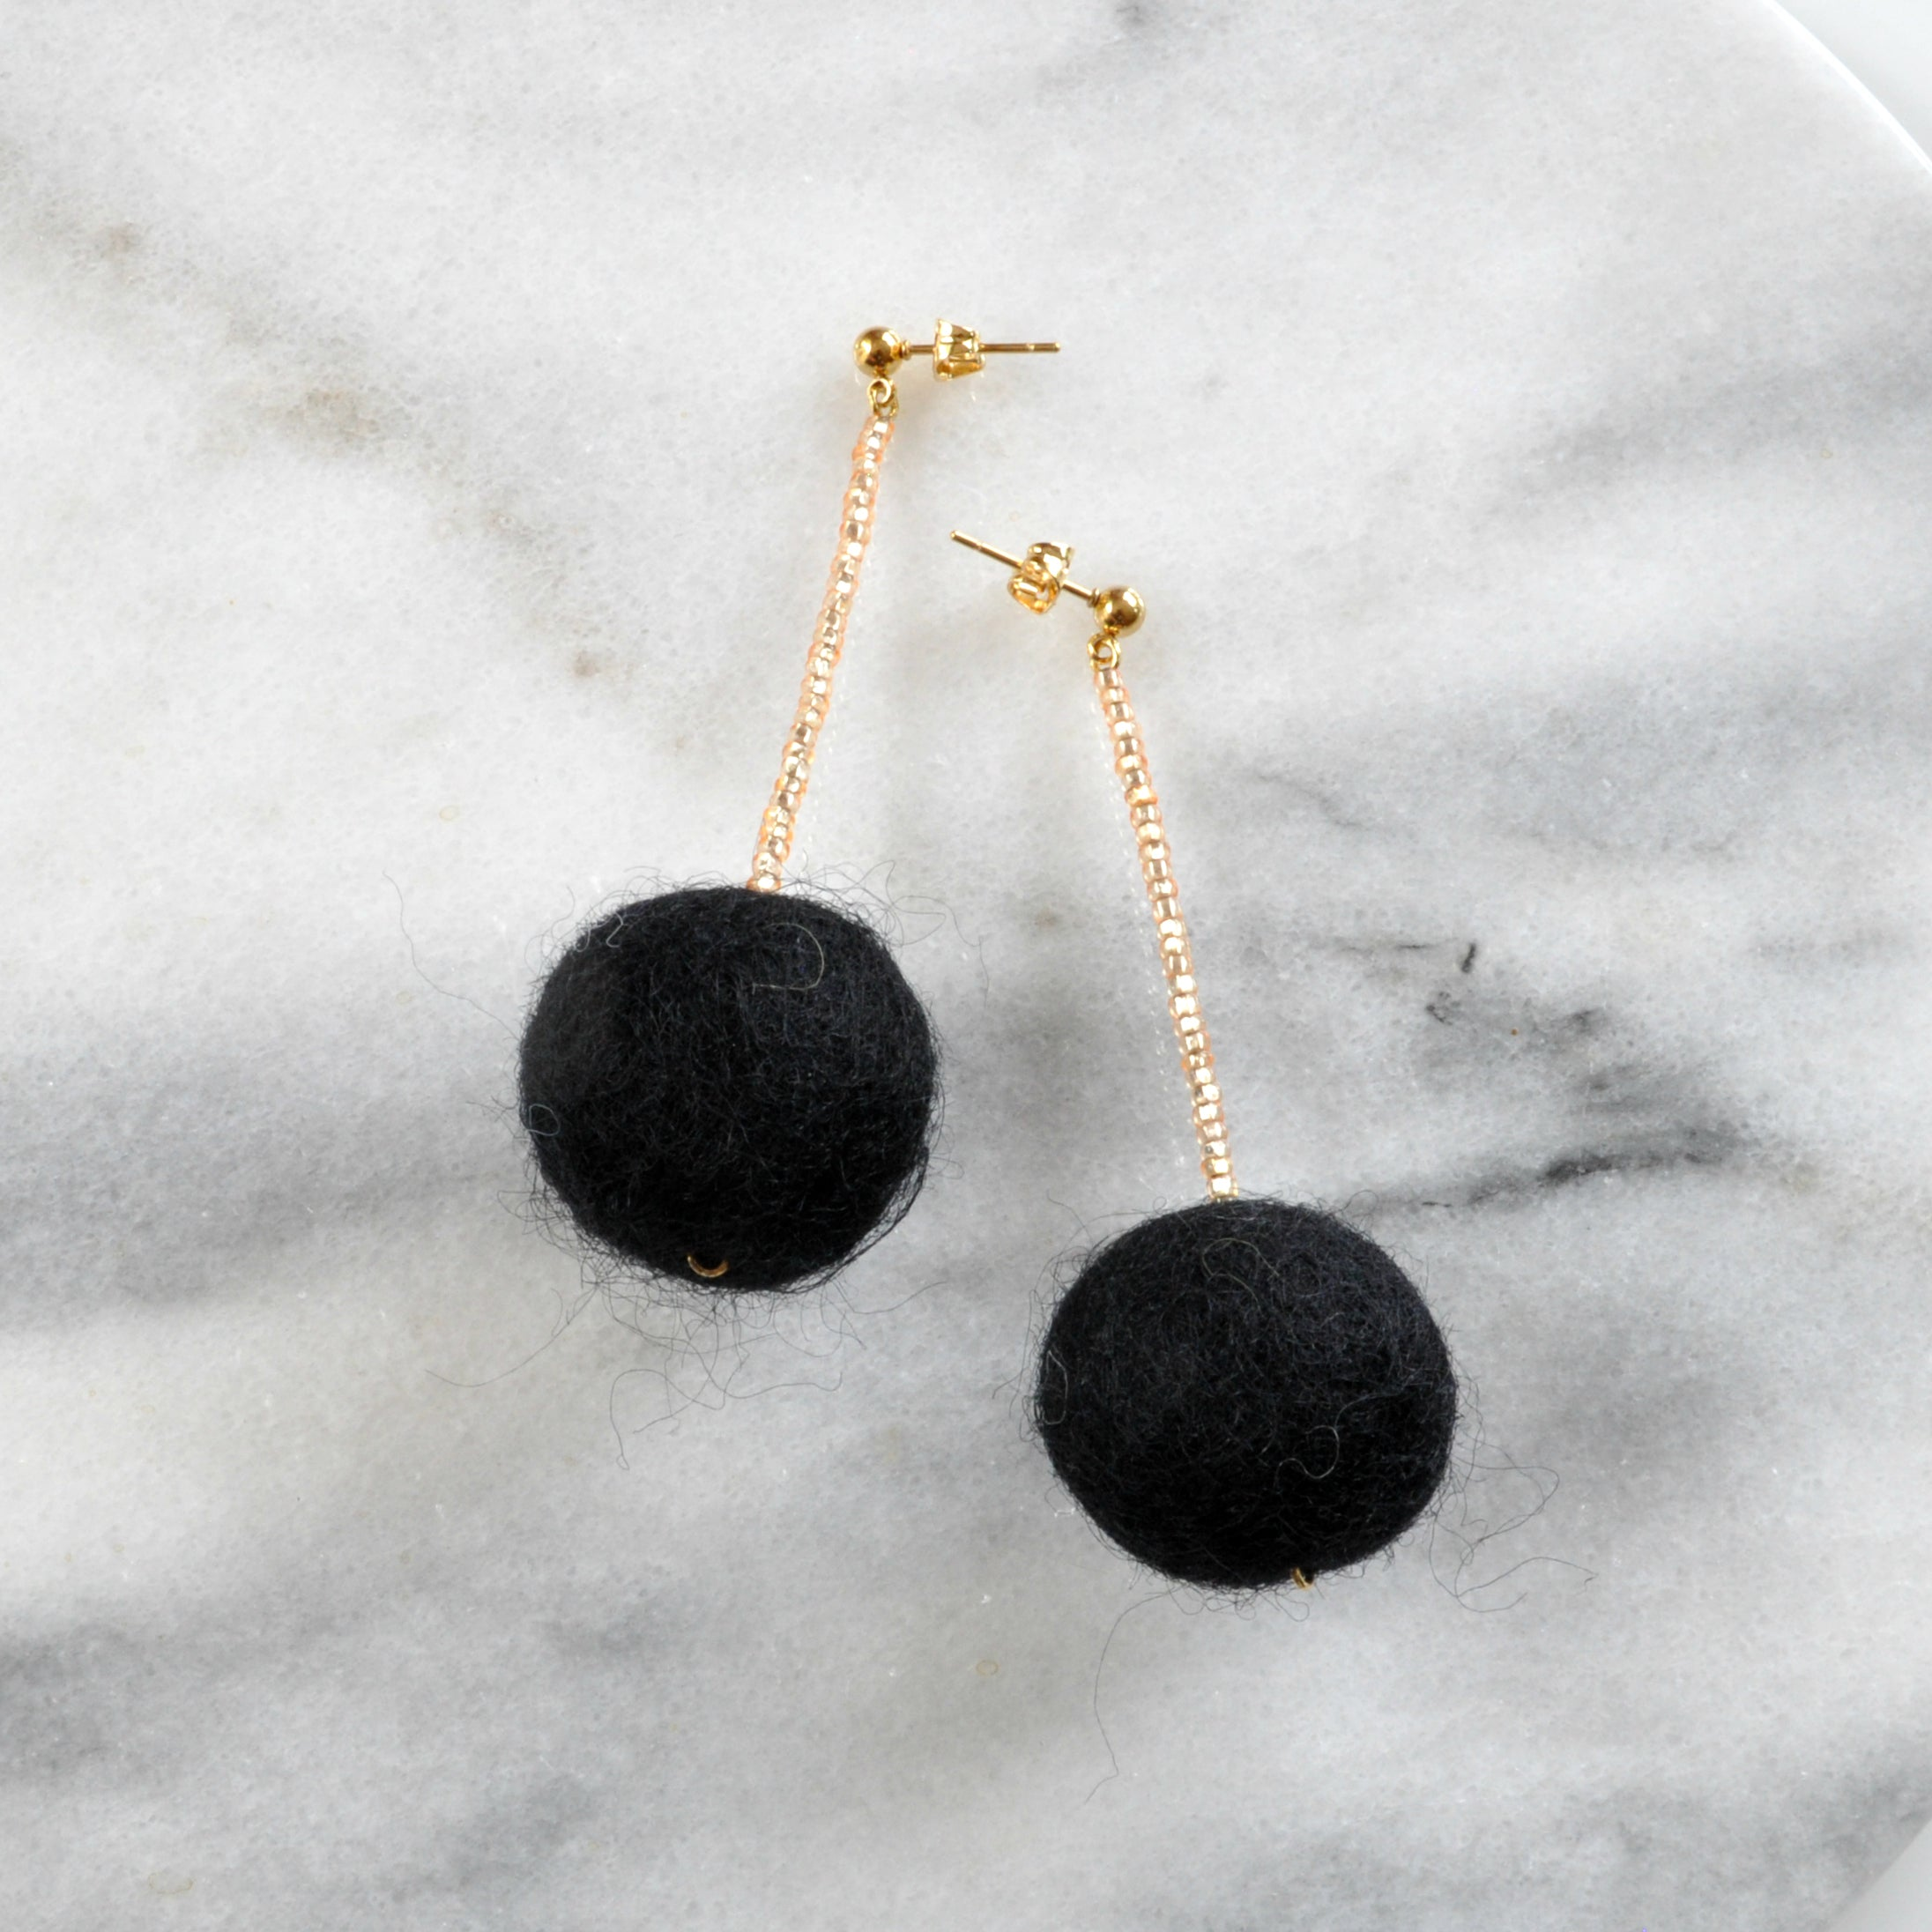 Libby & Smee pom pom earrings in Black with gold color combination